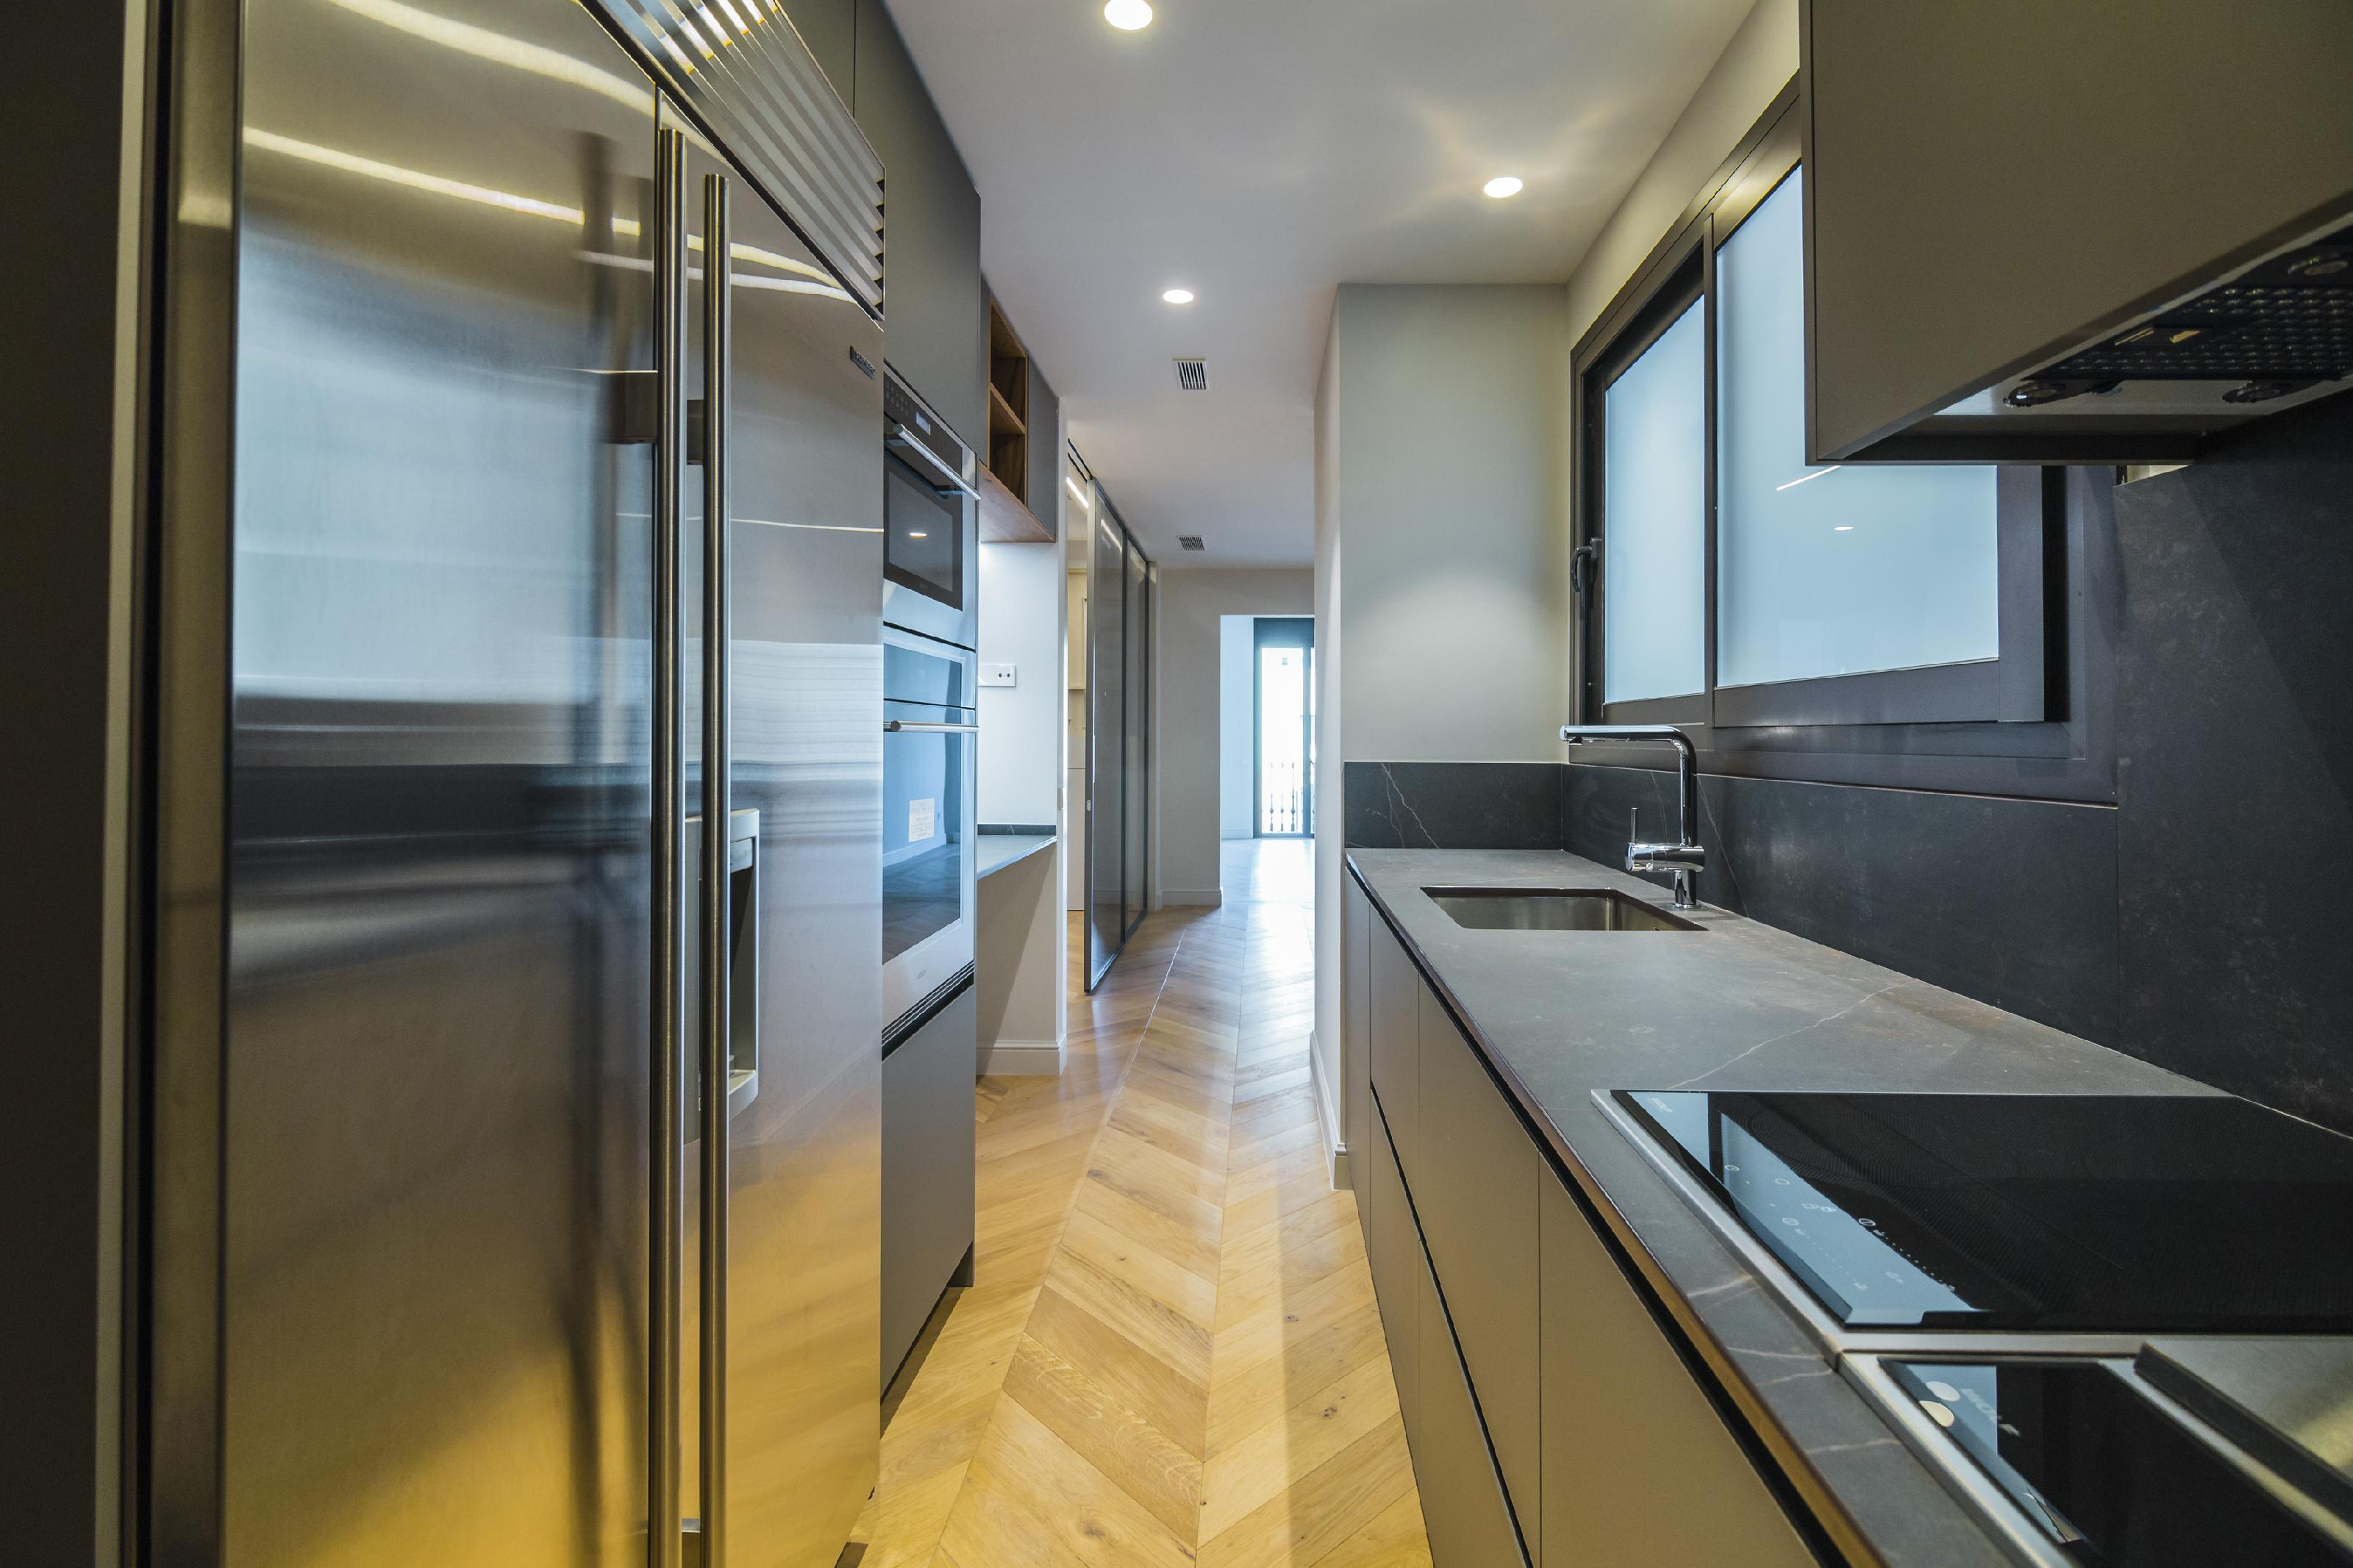 225429 Apartment for sale in Eixample, Dreta Eixample 12